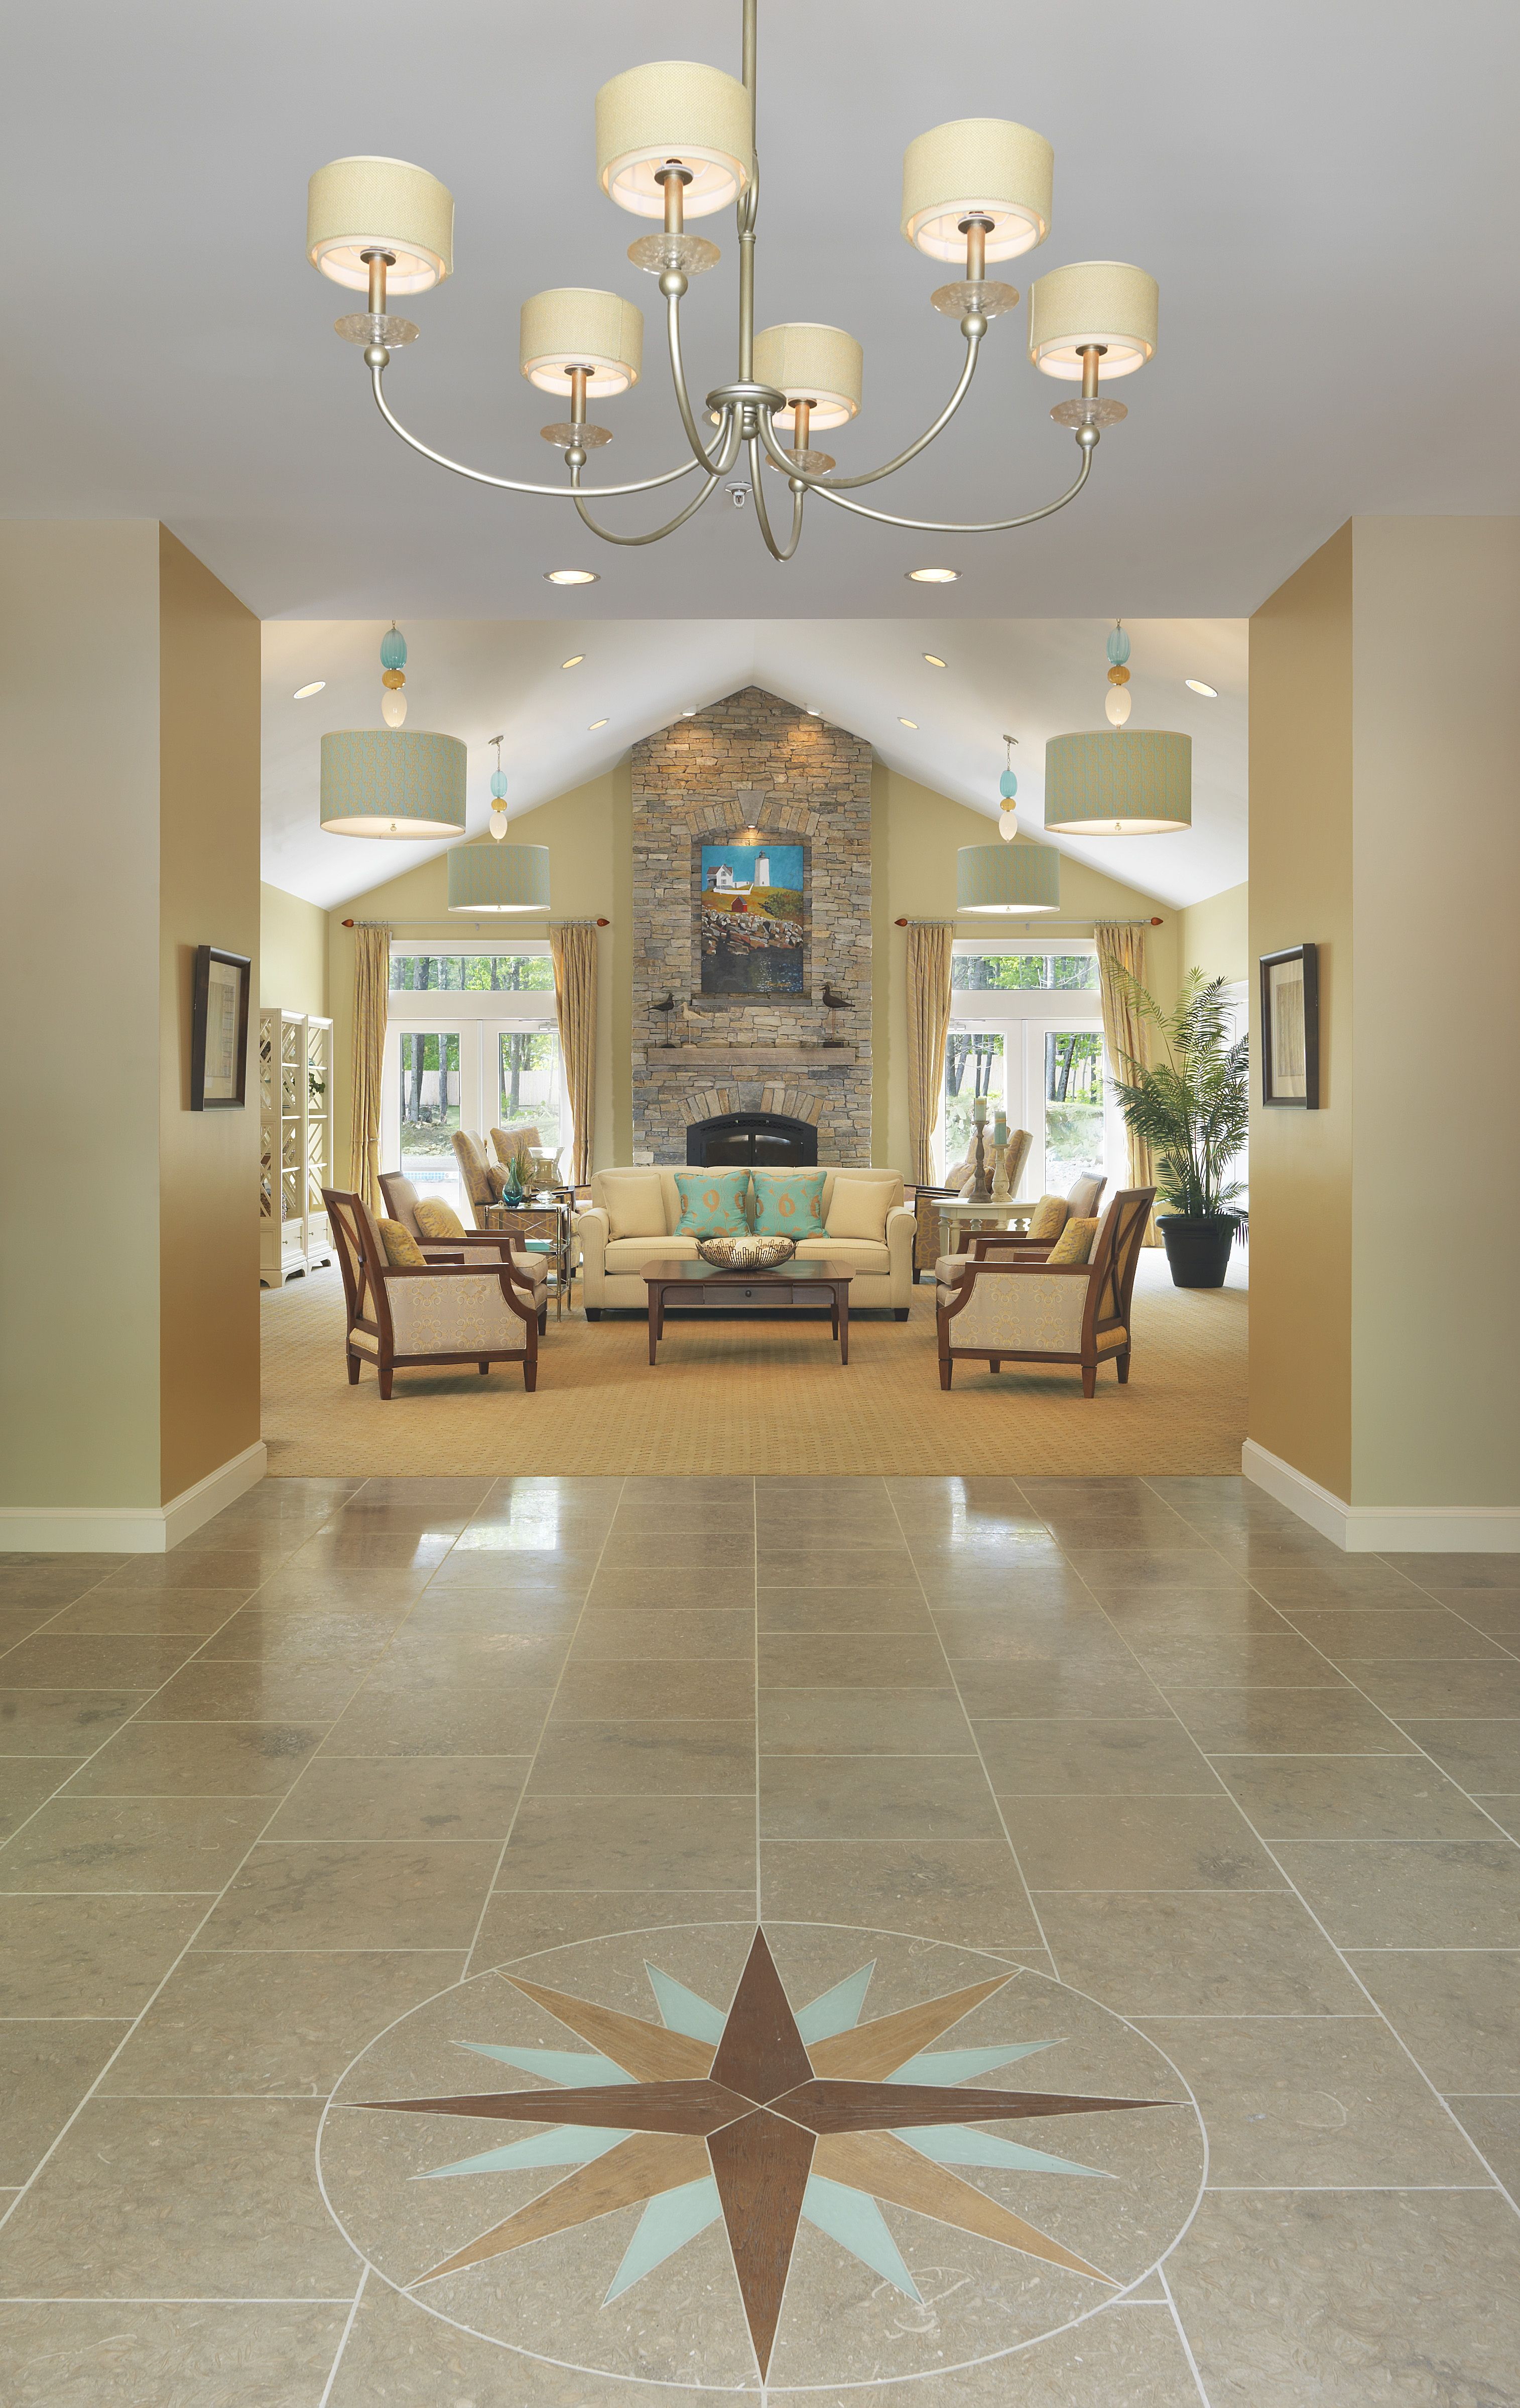 Online Room Remodel Design: Another View Of The Foyer As It Flows Into The Great Room